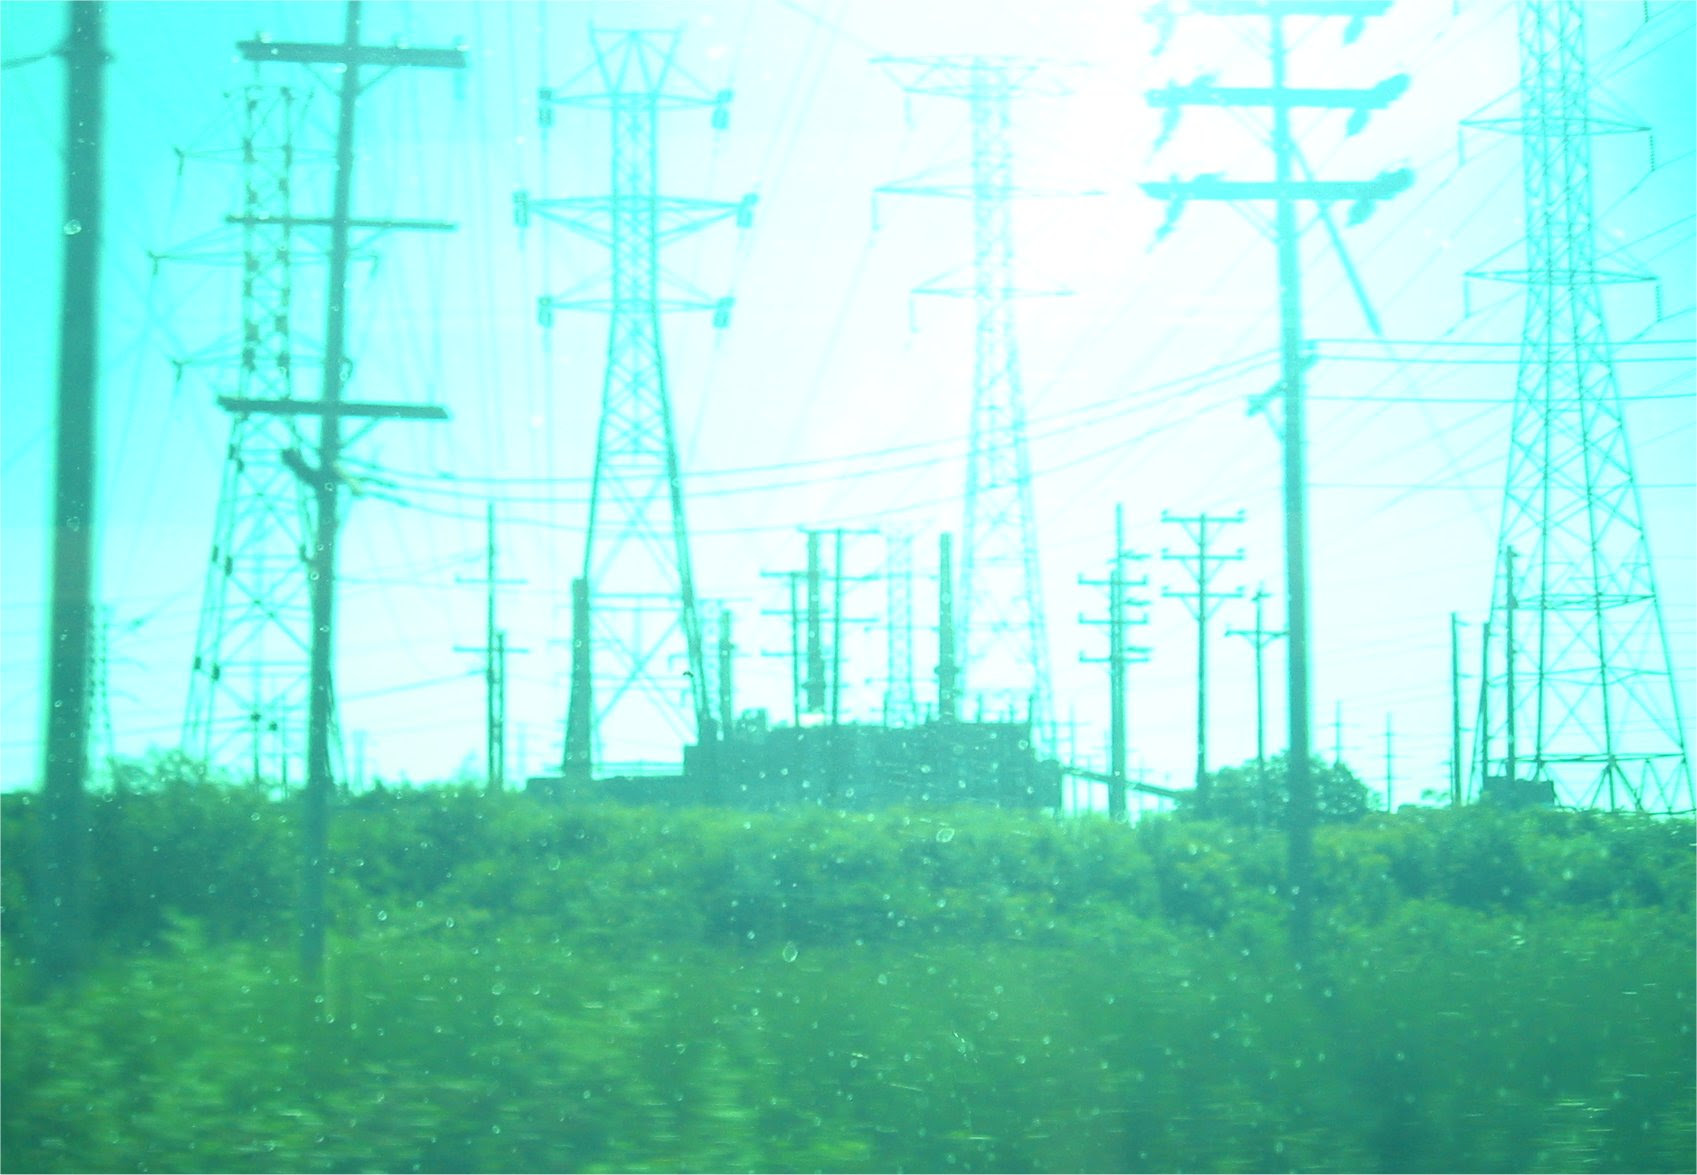 Pleasant Prairie Power plant near Kenosha WI as seem from Metra train - abstract image of high tension electrical wires - soul-amp.com